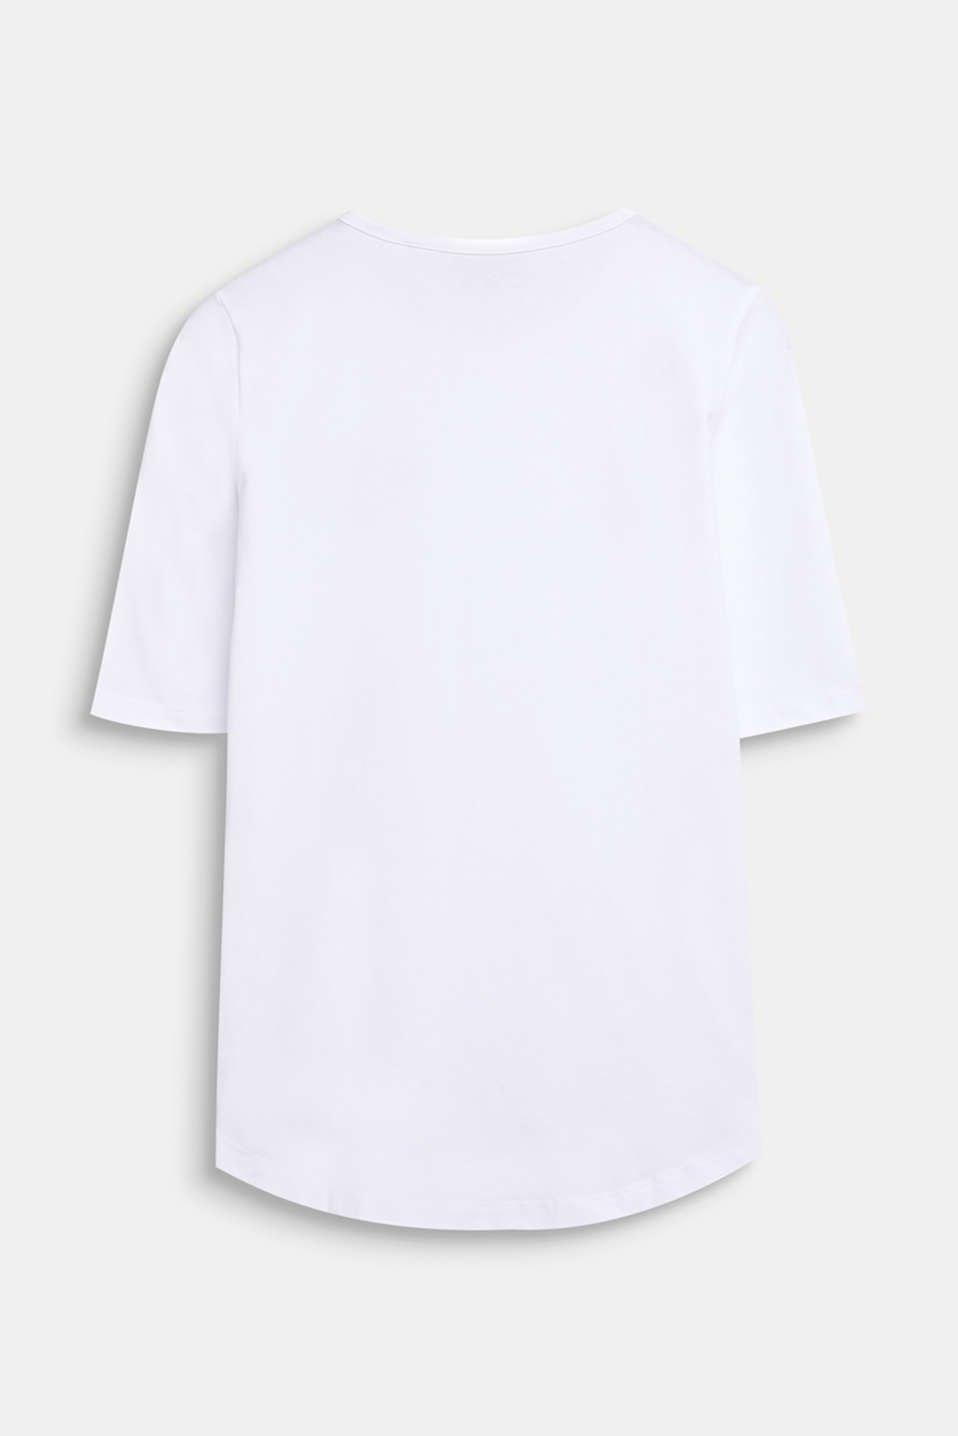 T-shirt with WiFi embroidery, stretch cotton, LCWHITE, detail image number 1